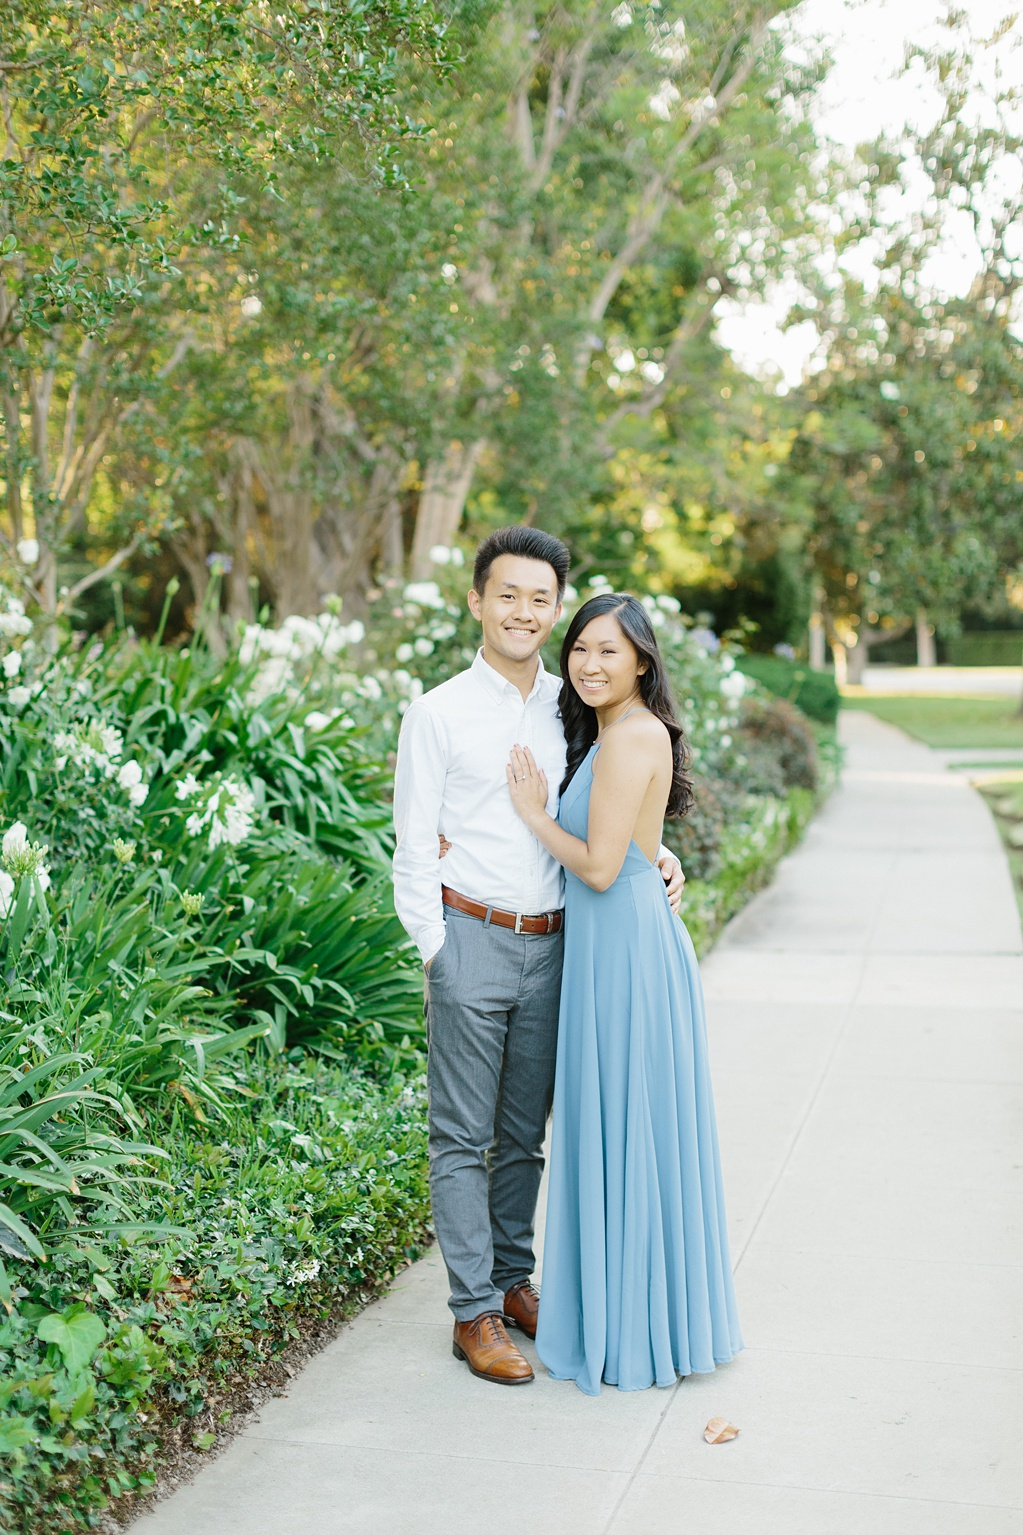 Elegant rose garden engagement shoot at Lacy Park in Pasadena by LA wedding photographer-Madison Ellis Photography (32)